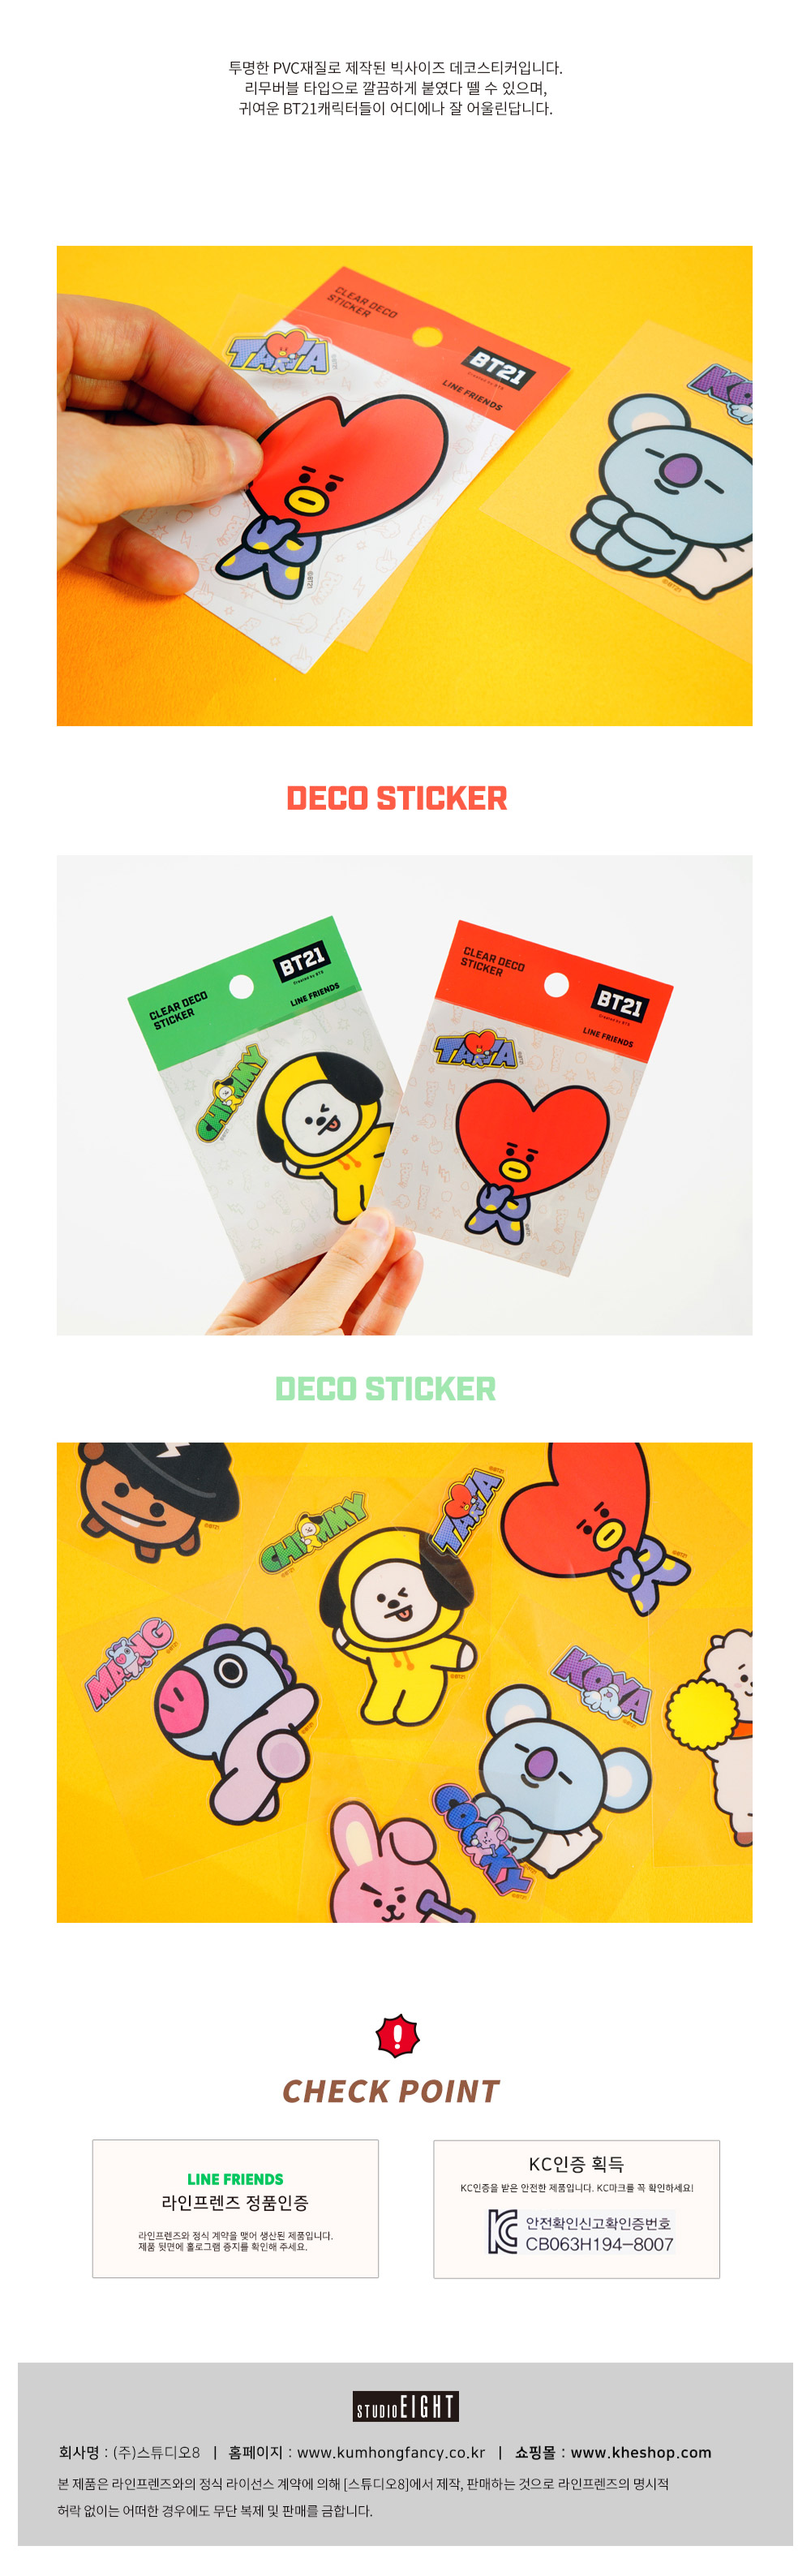 bt21_cleardecostickerver02_02.jpg